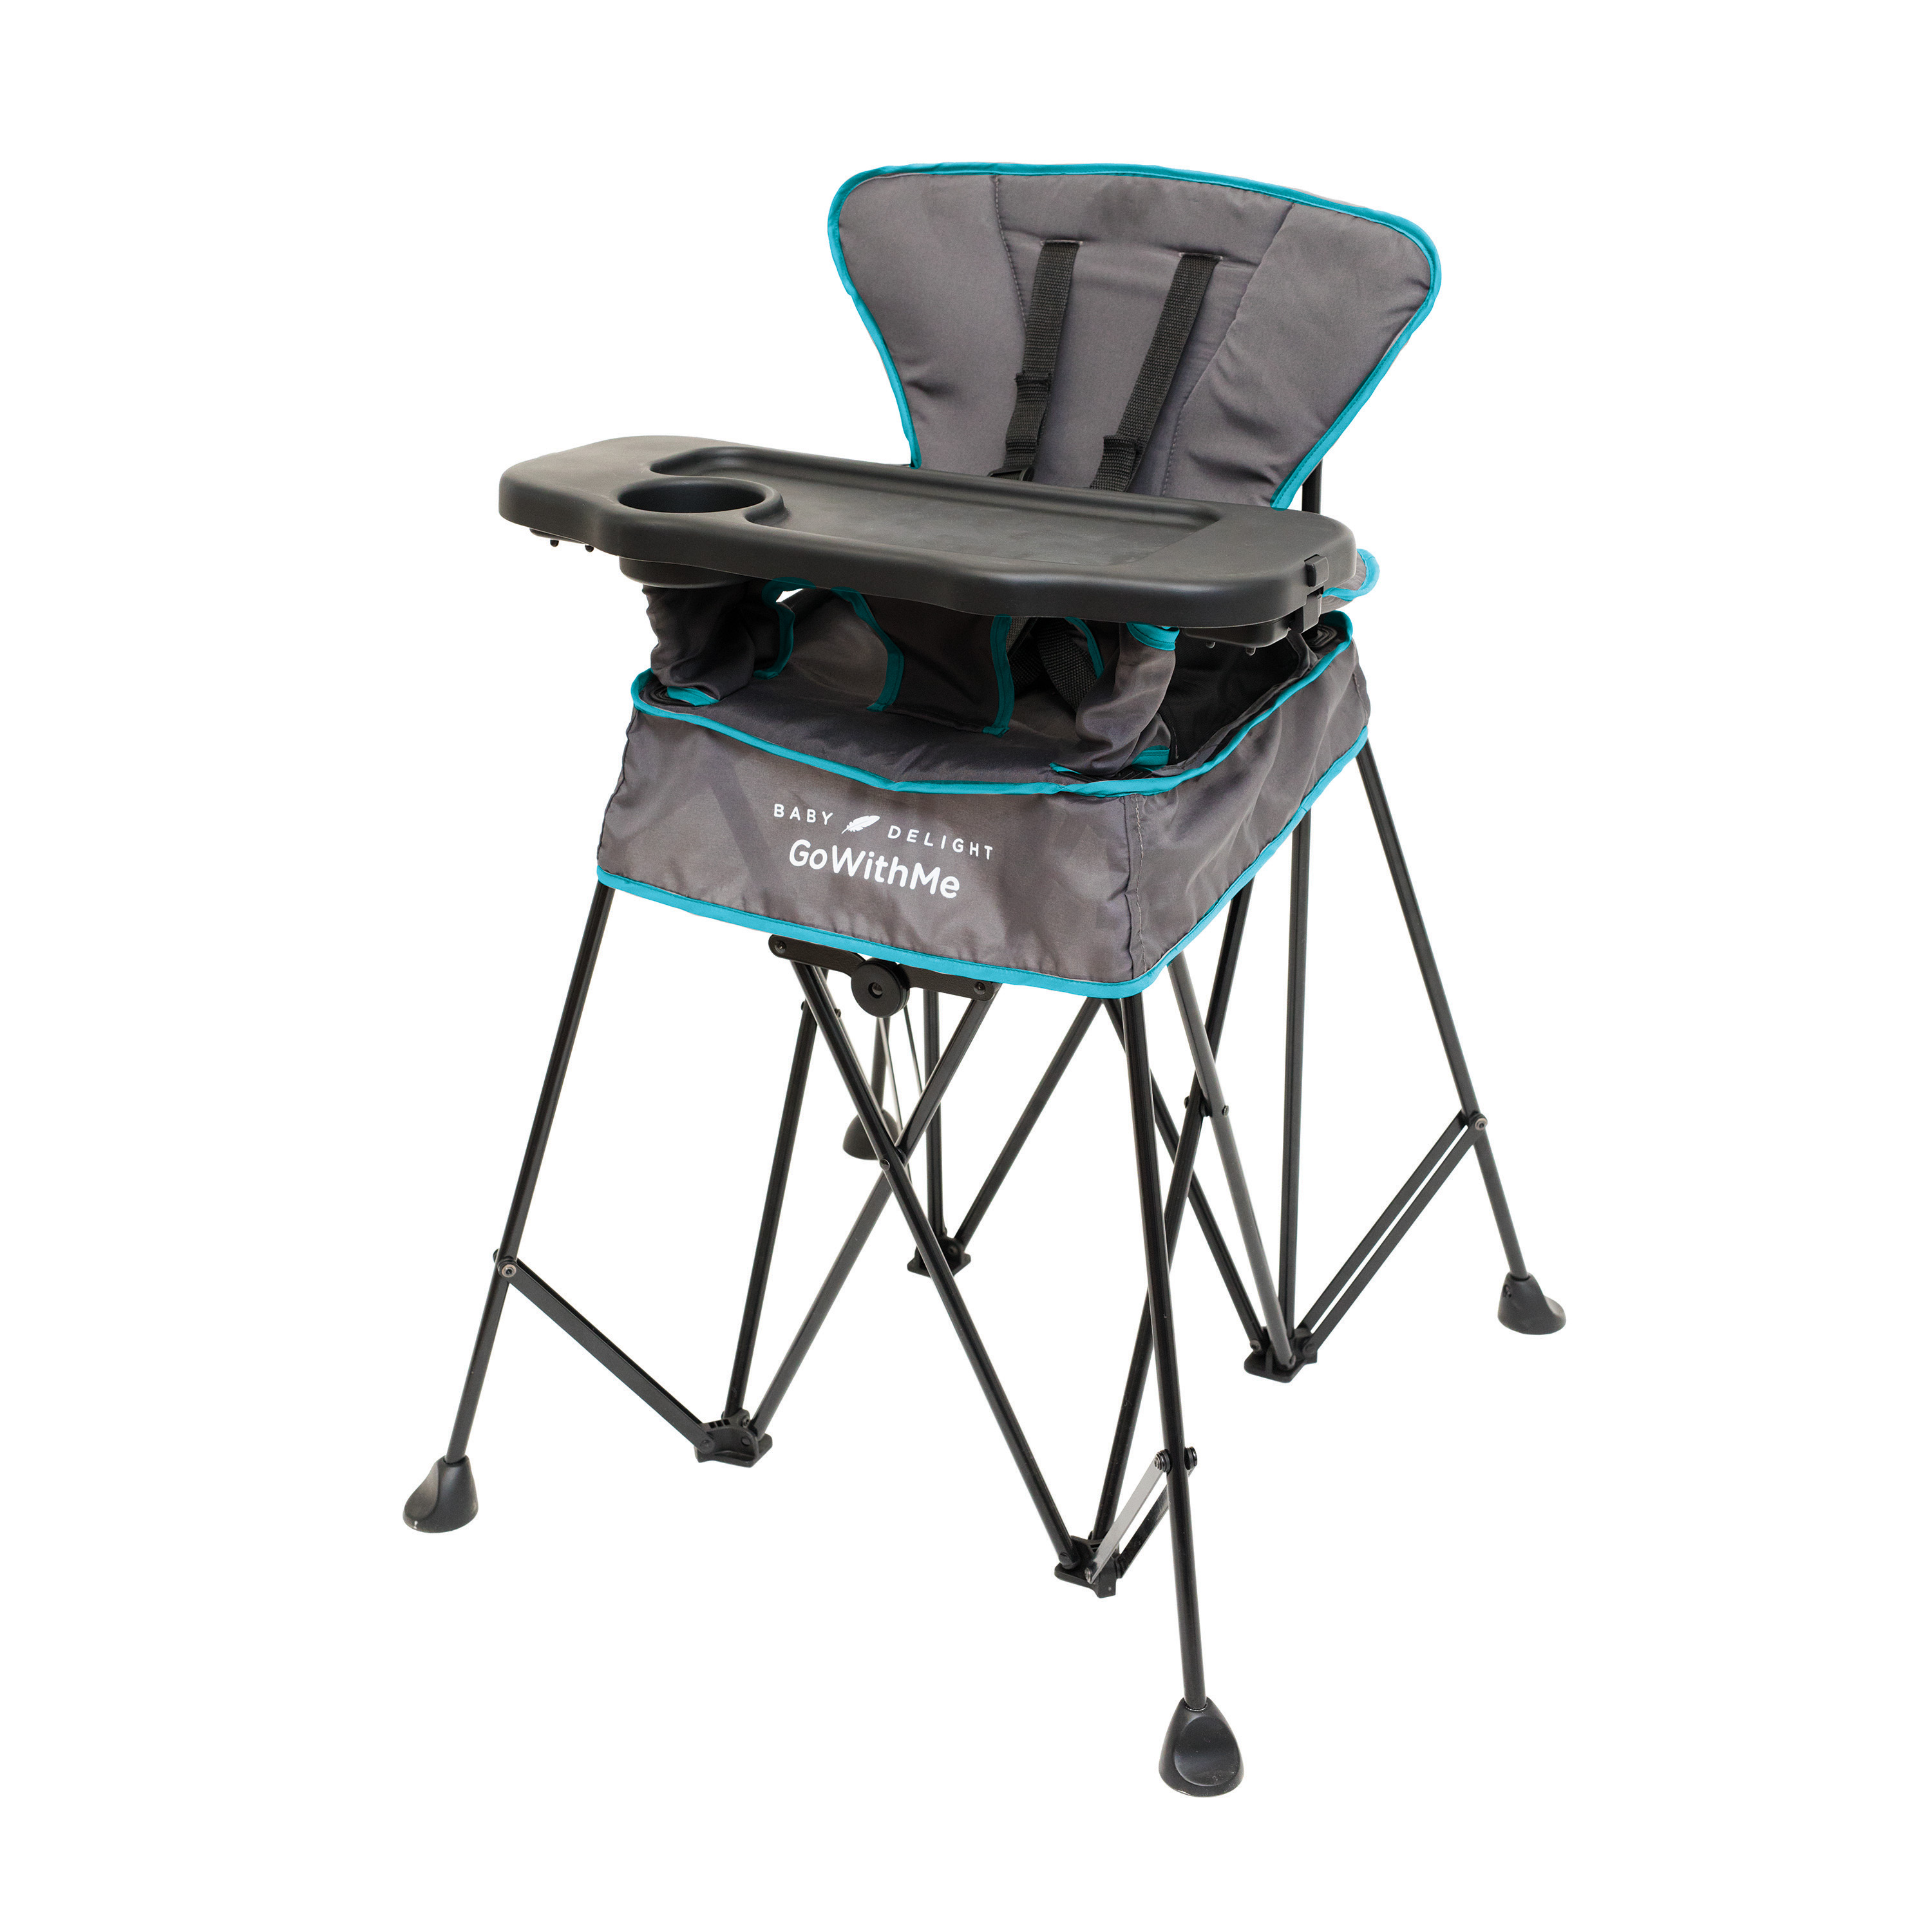 """Baby Delight, a product design company for all-things-baby, offers a """"Go With Me"""" line of portable high chairs."""